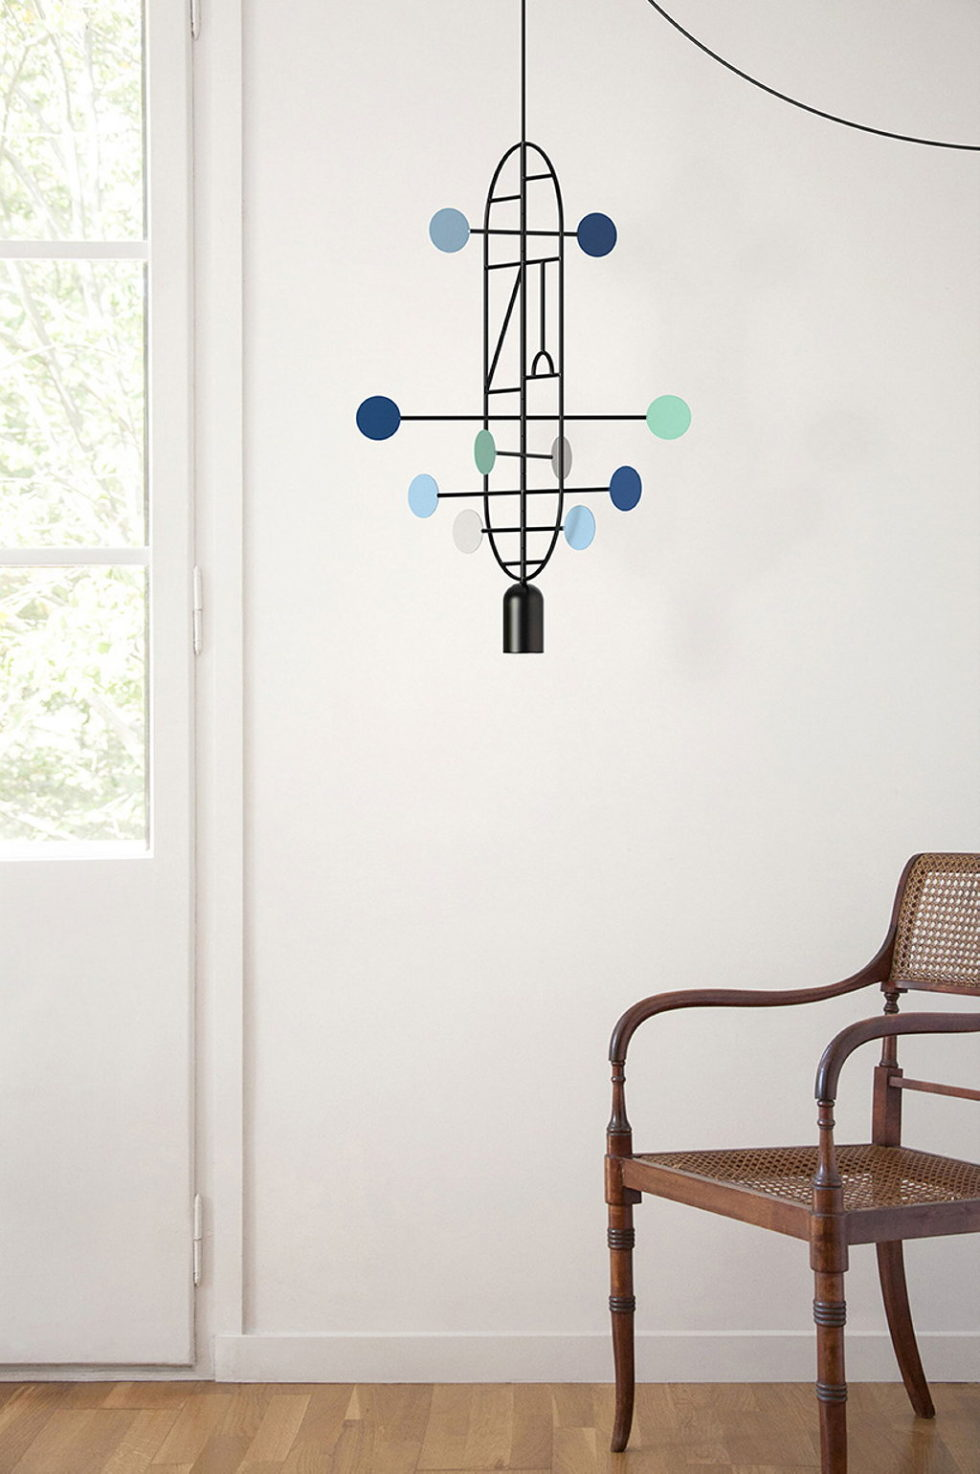 Minimalist pendant lamps Lines & Dots from Goula Figuera studio 3